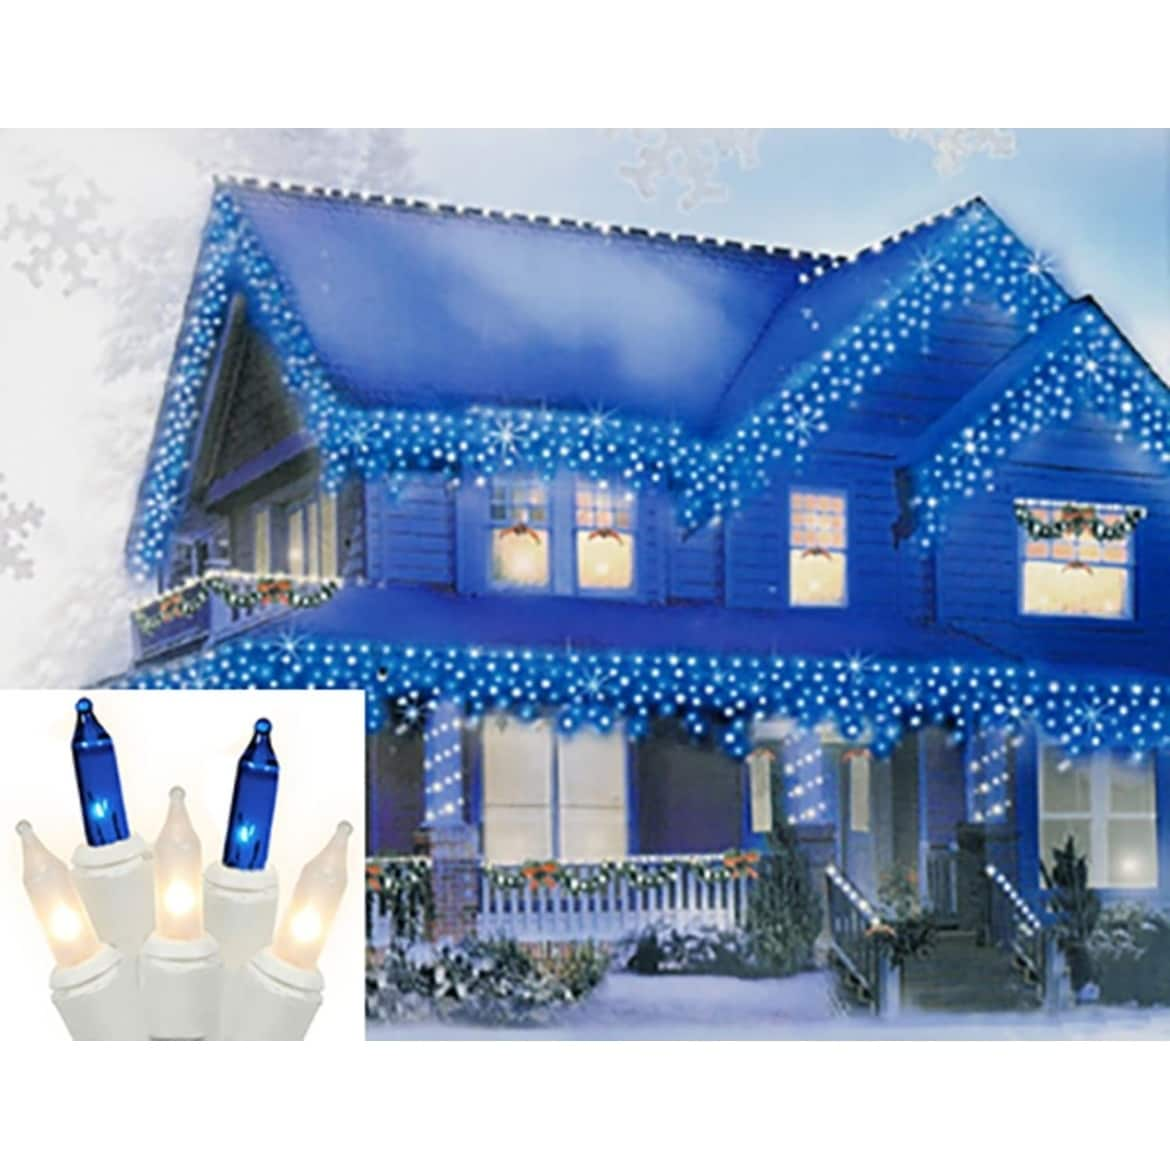 Sienna Set of 100 Blue and Frosted Clear Mini Icicle Chri...